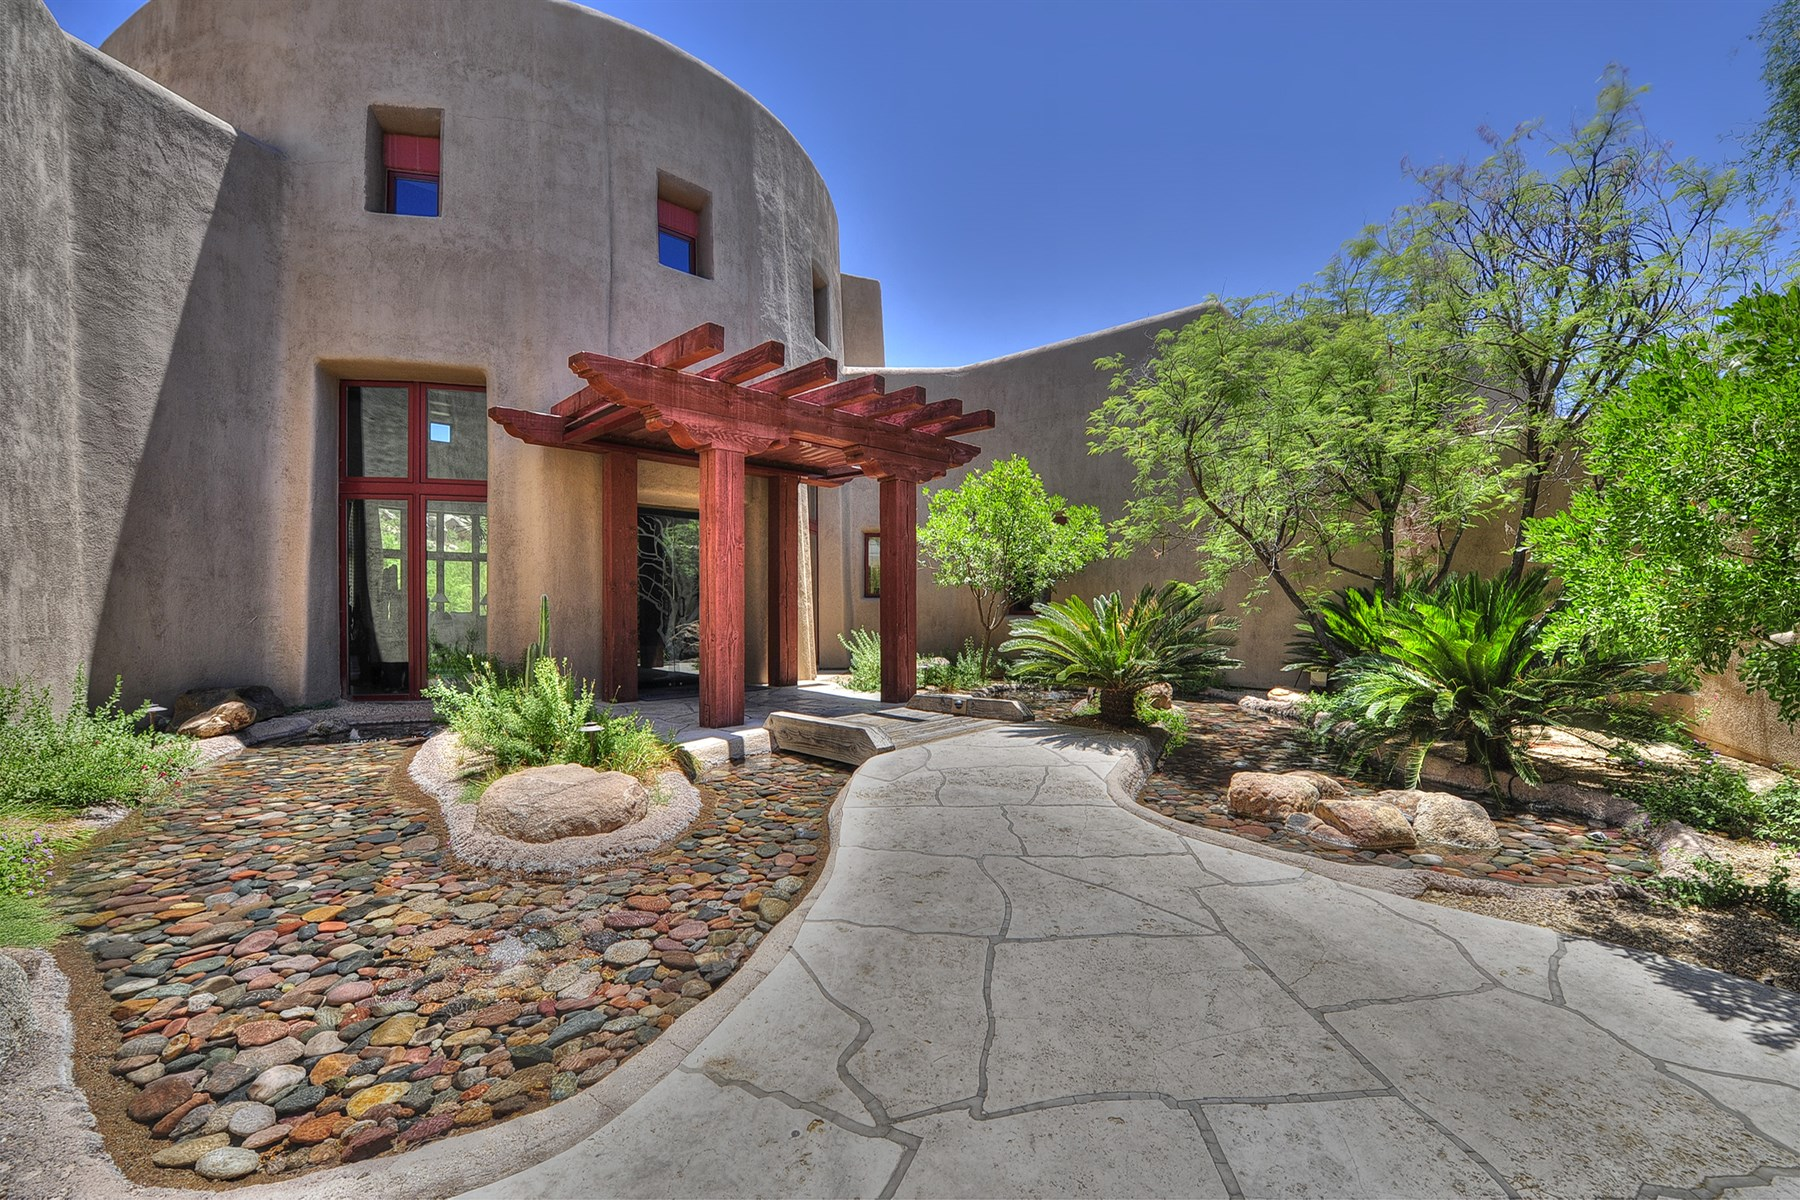 Property Of Stunning two-story home in The Boulders community